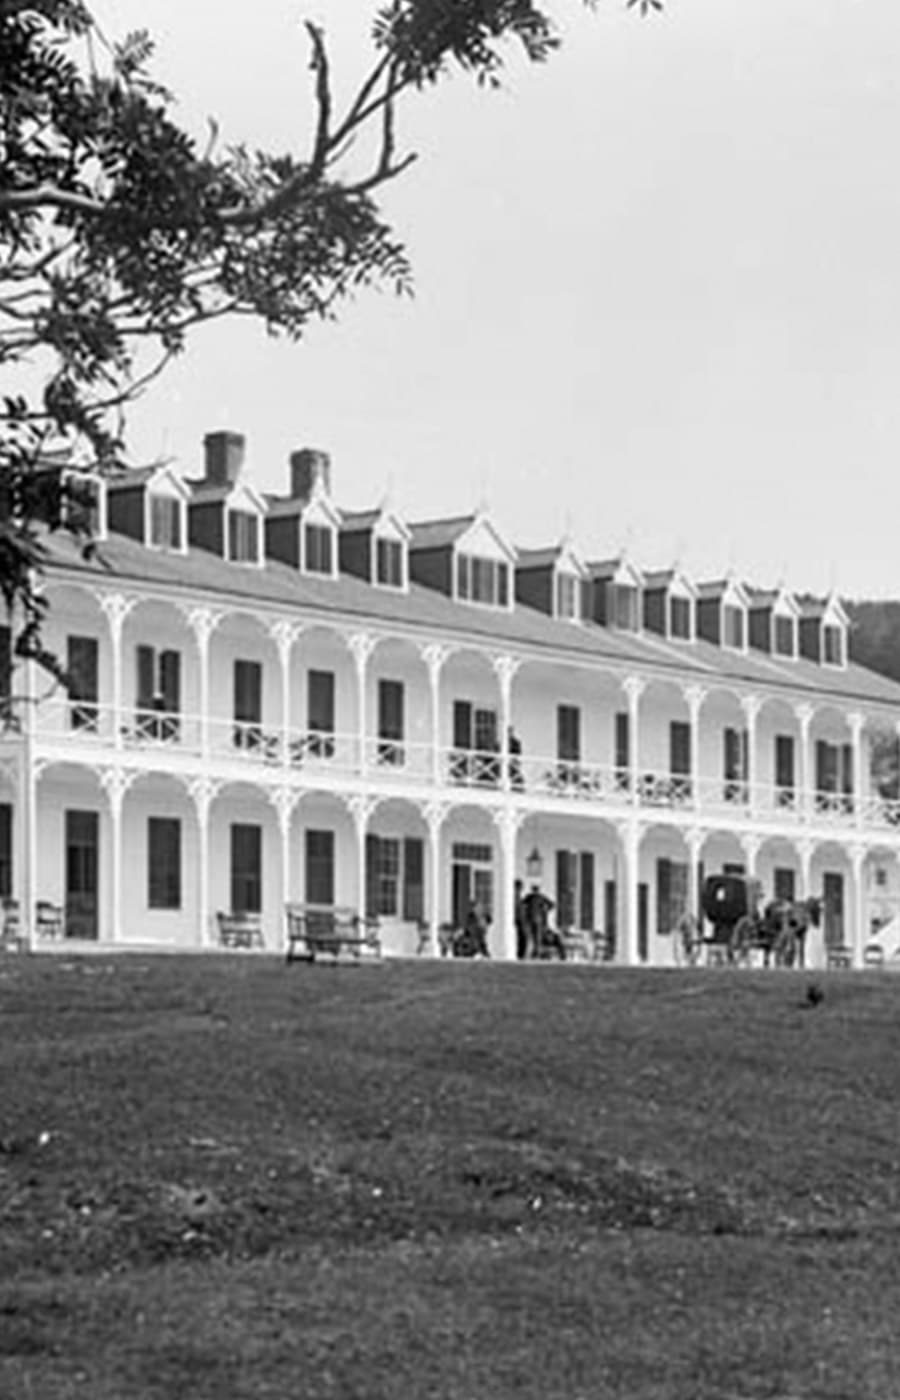 The history of the Hotel Tadoussac